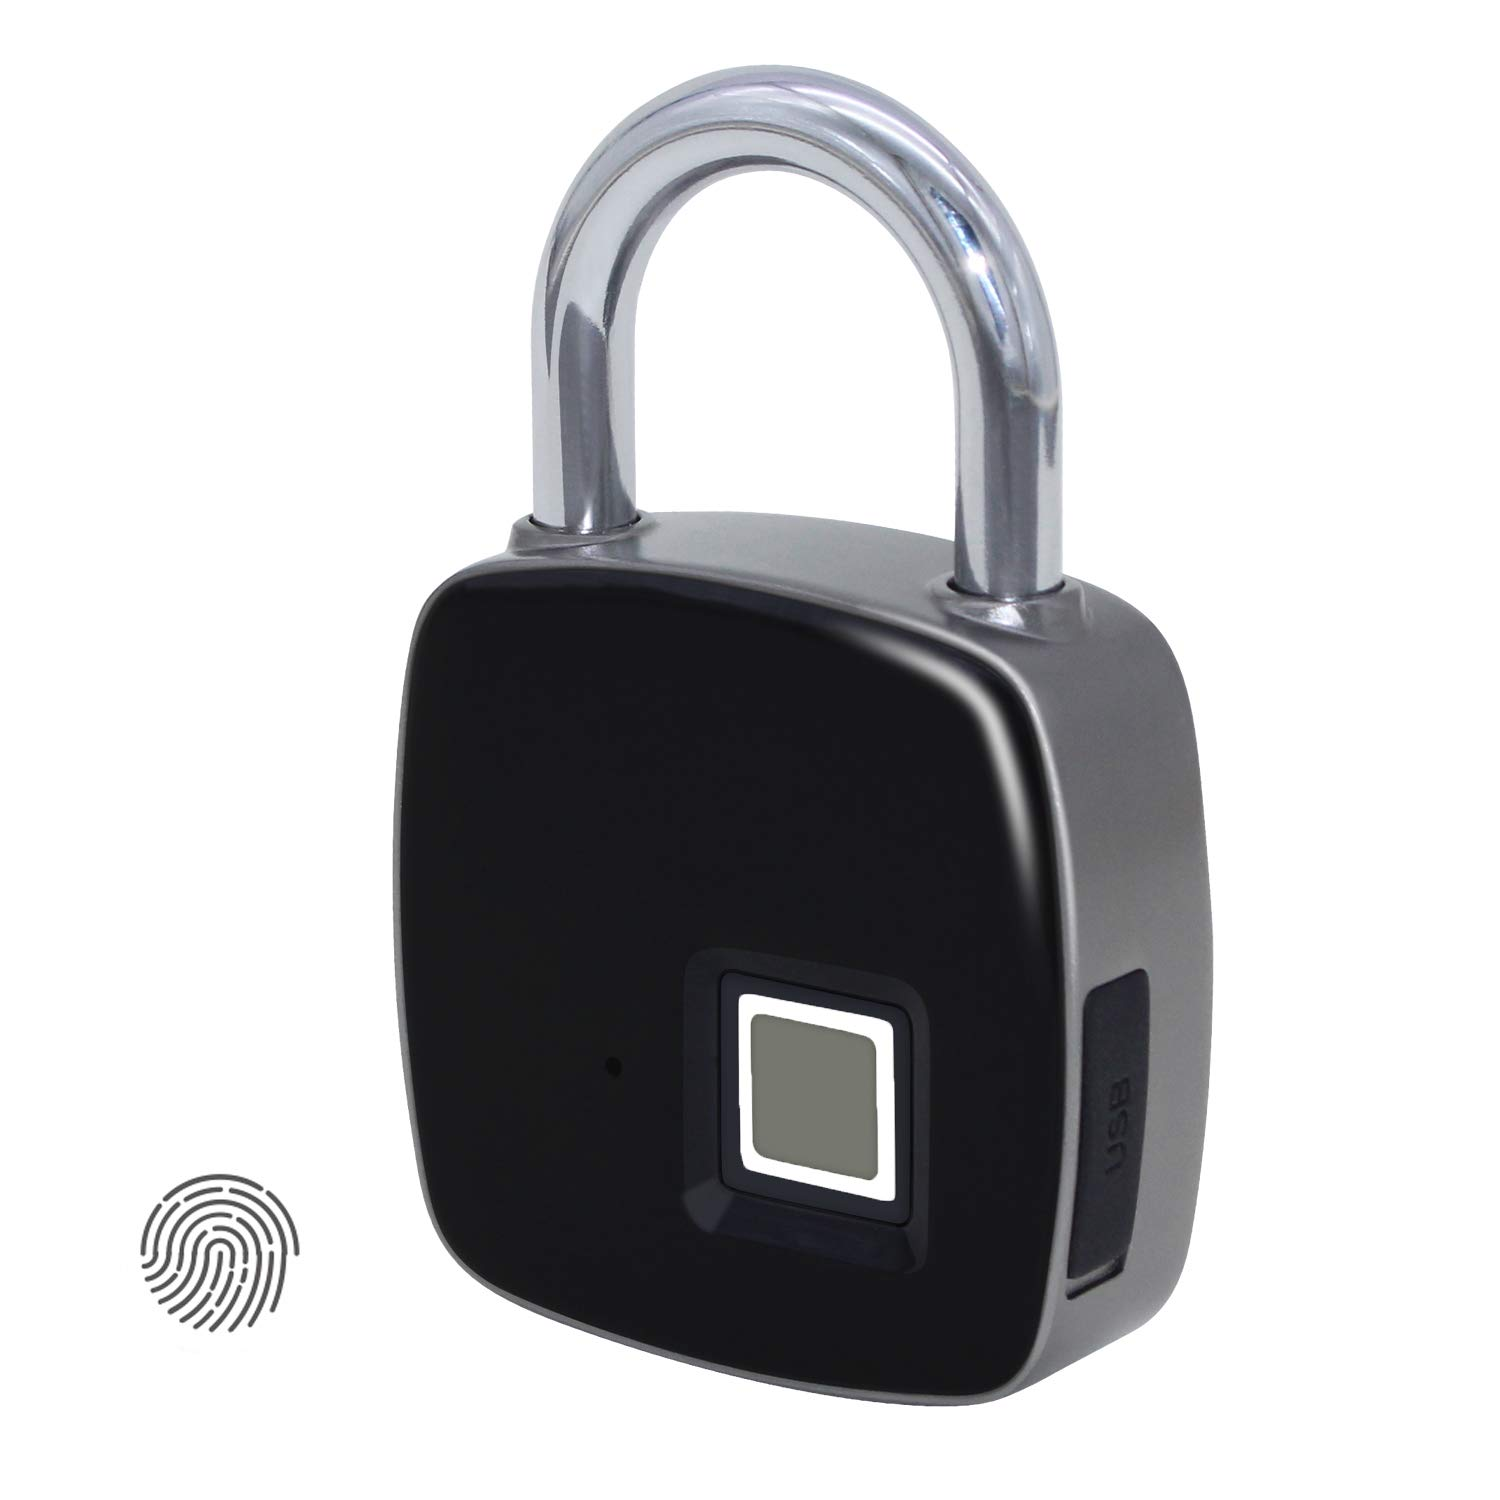 Smart Fingerprint Padlock Biometric, ANYTEK P3 Waterproof Lock with Finger Print Security Touch Keyless Lock USB charge & 2 Years Standby Time for Gym Locker, Suitcase, Cabinet Box - Black